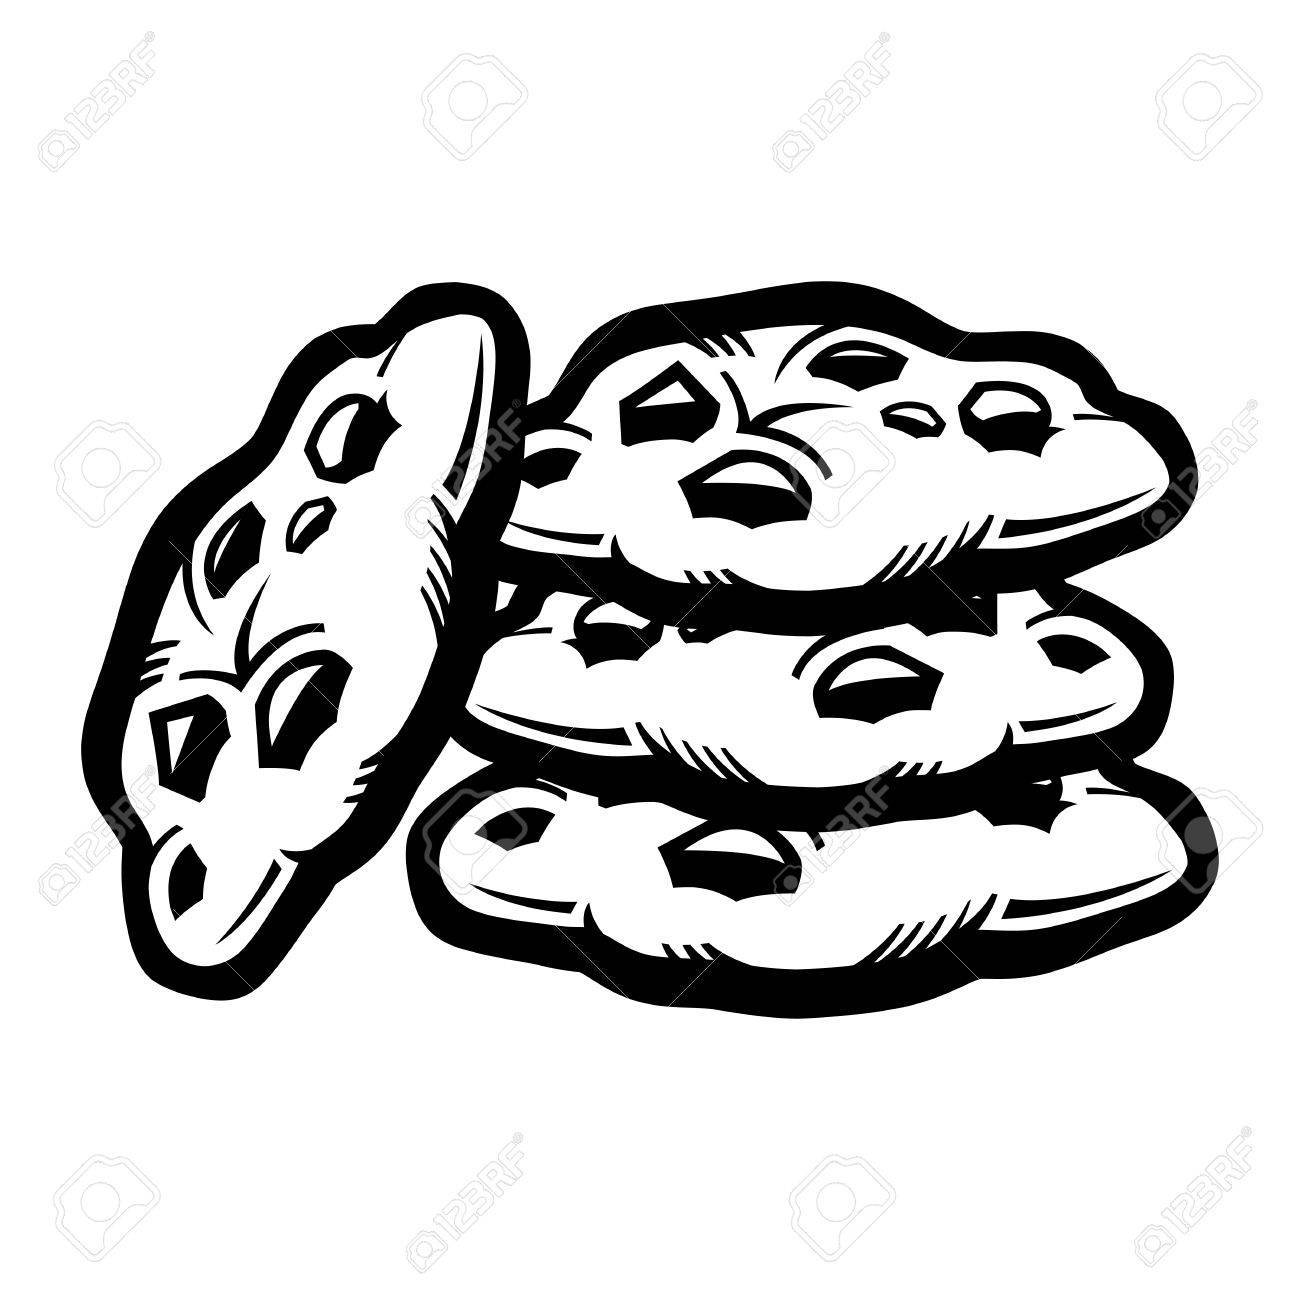 Clipart black and white chocolate chip cookie image stock Chocolate chip cookies clipart black and white 6 » Clipart Portal image stock